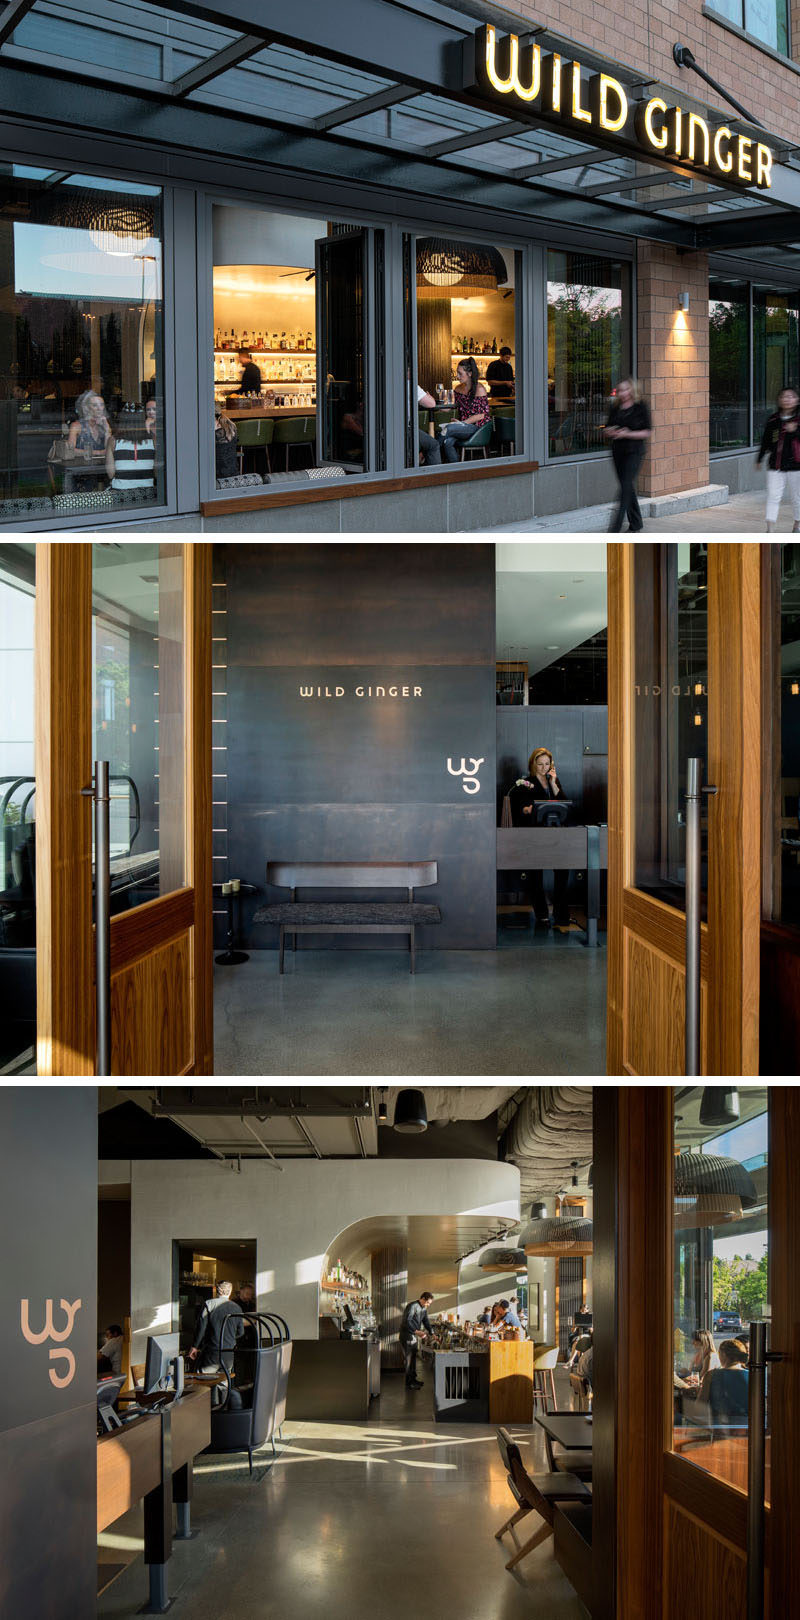 Seattle-based firm SkB Architects have recently completed the interior design for 'Wild Ginger', an established Southeast Asian restaurant that moved to a new location in Bellevue, Washington.